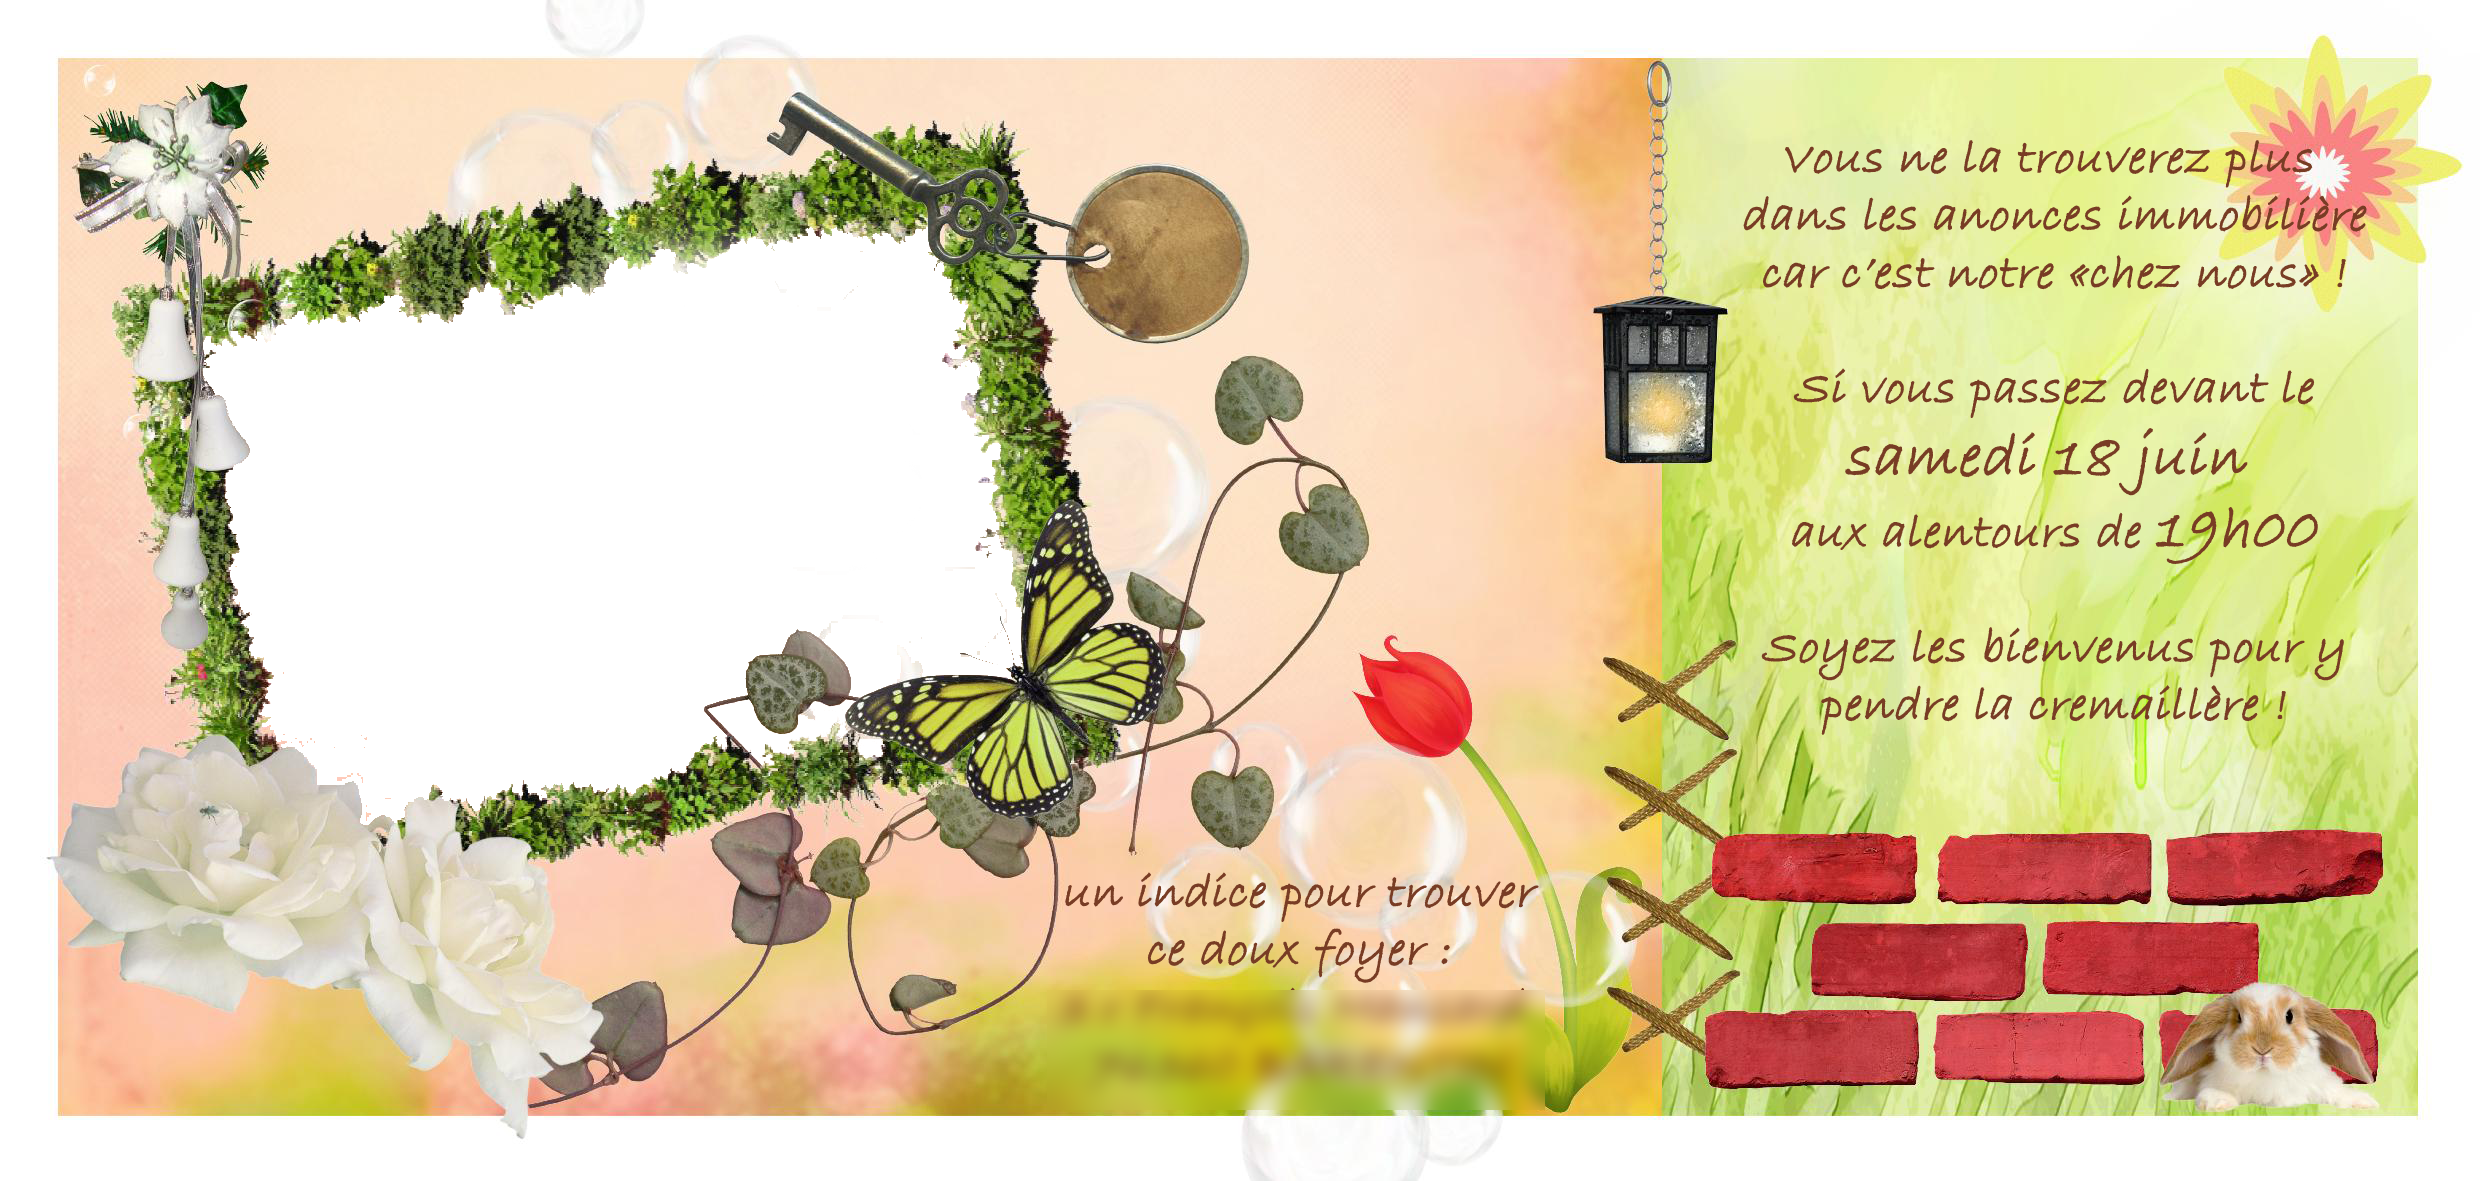 Digiscrap made by didii for Pendre la cremaillere cadeau